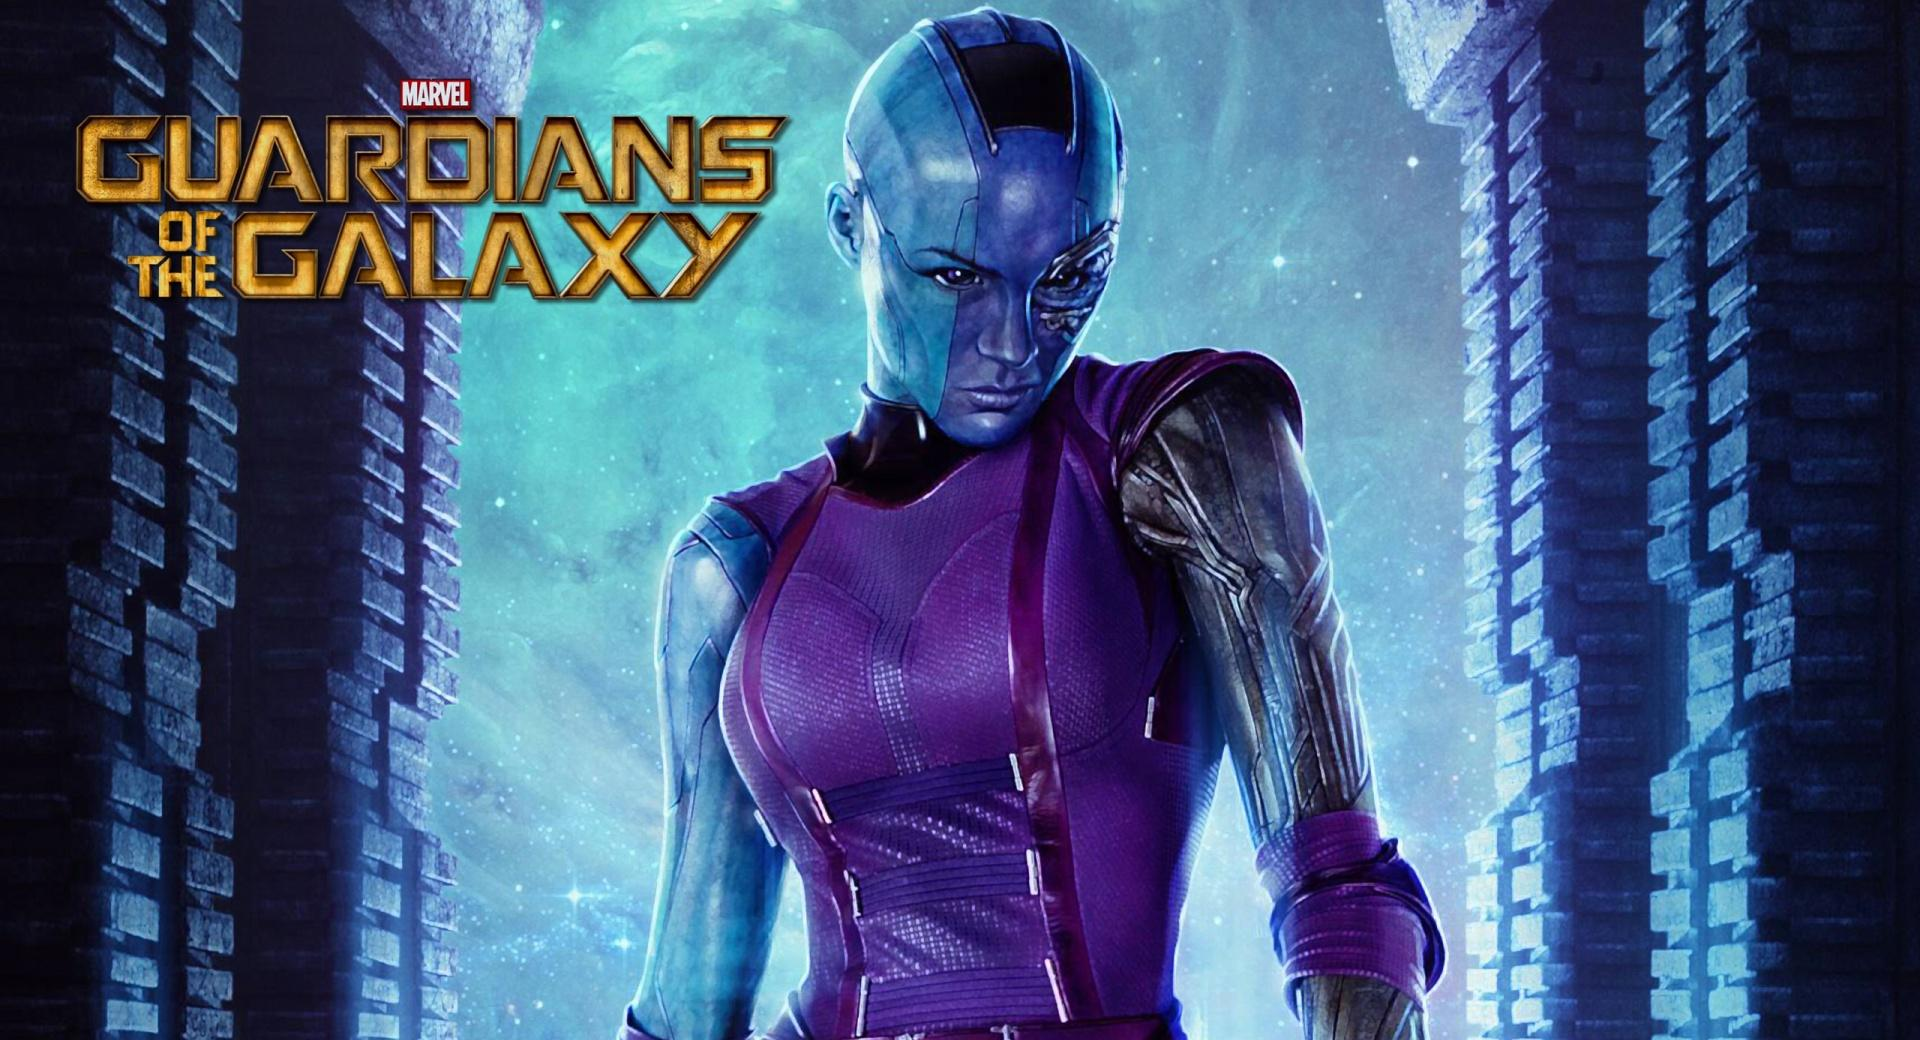 Marvels Guardians of the Galaxy Nebula wallpapers HD quality